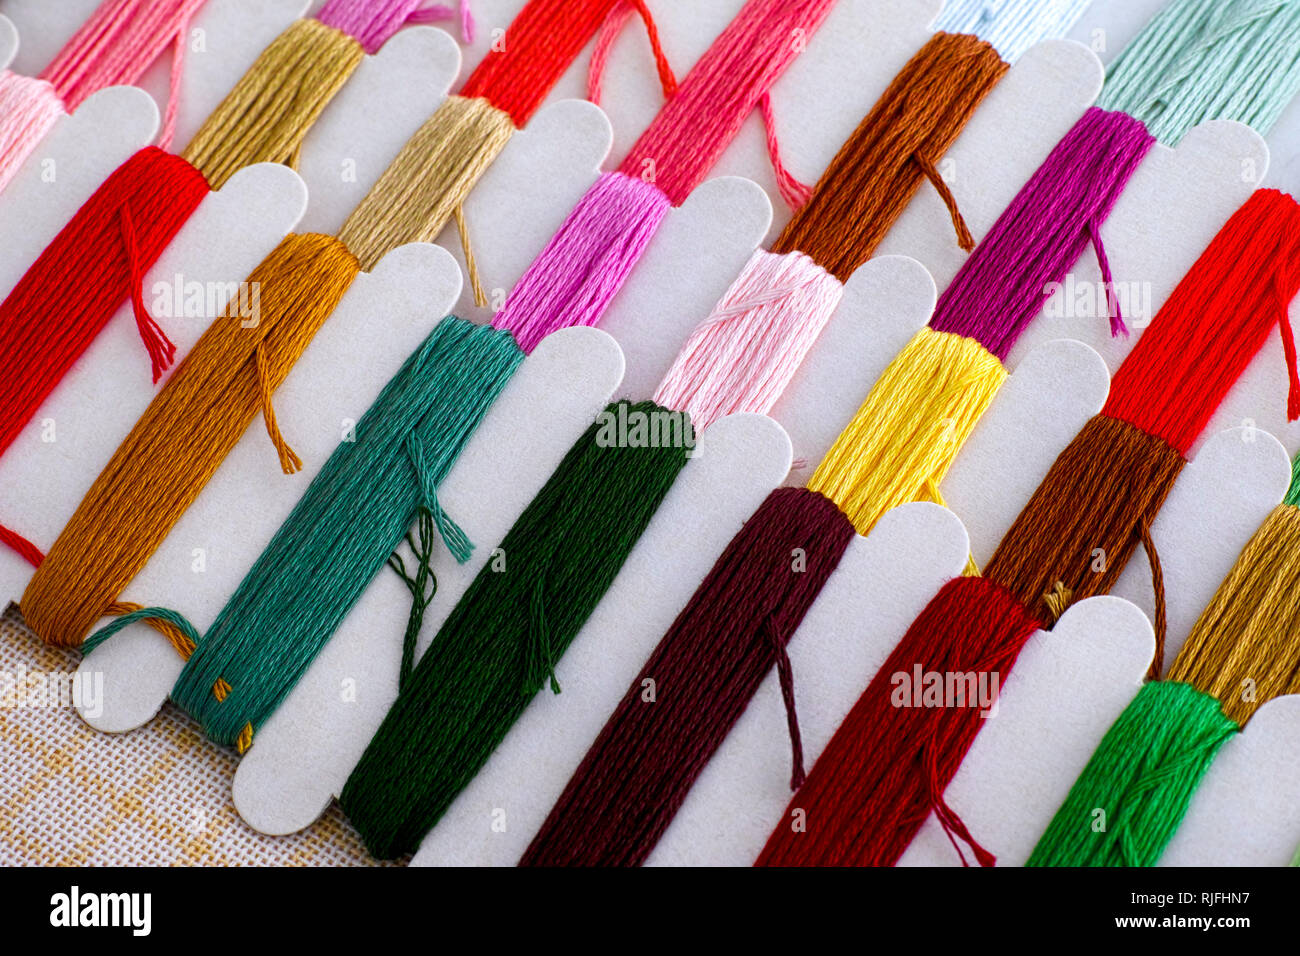 Colored embroidery threads on spools with canvas ready for cross stitch . Close-up. - Stock Image